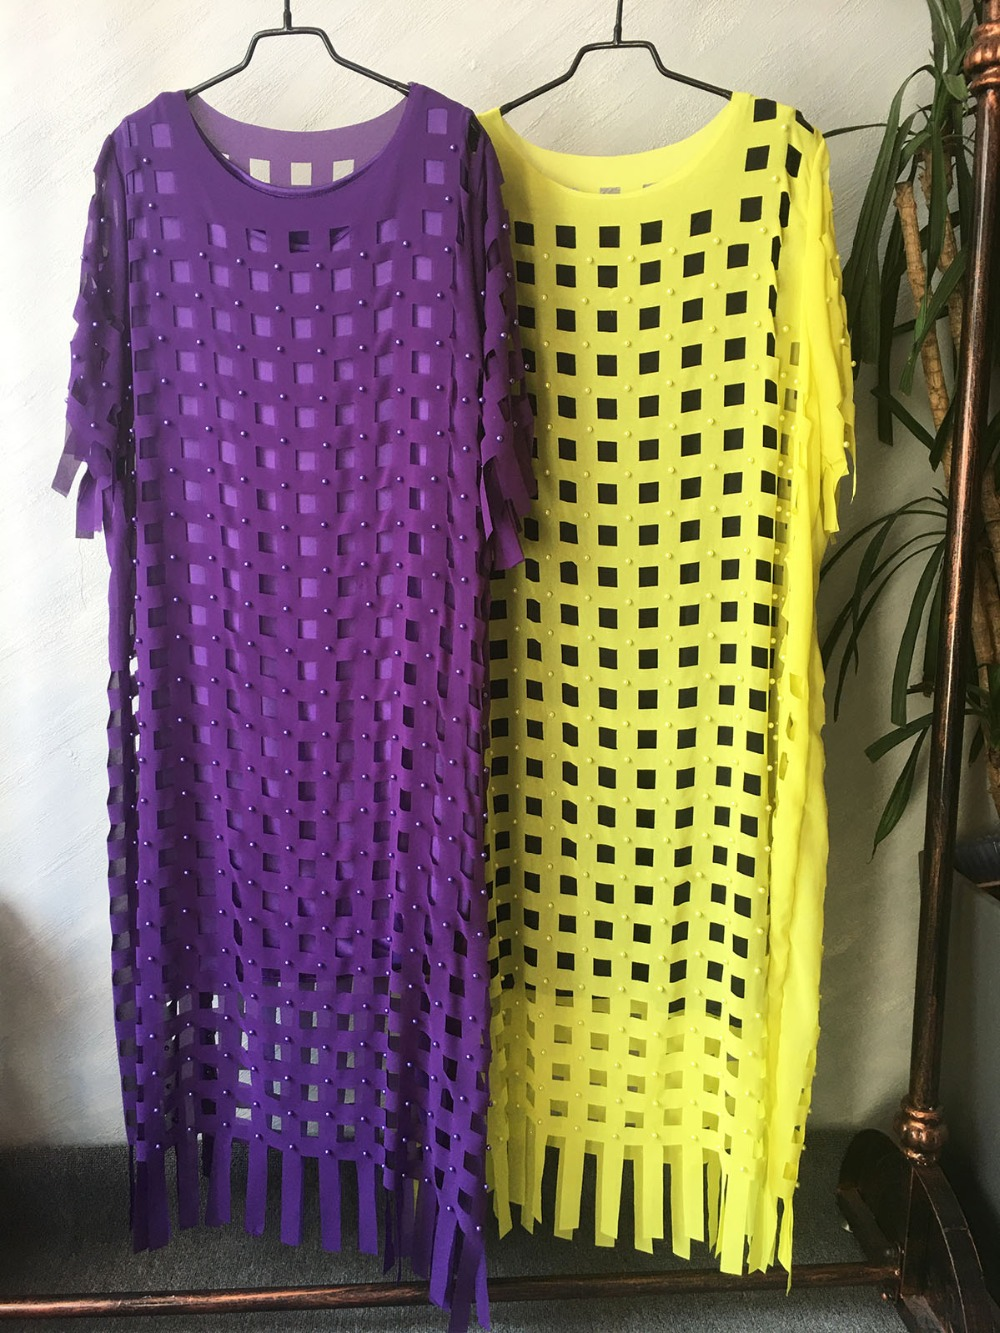 African Dresses For Women Plus Size Dress Loose Chiffon Hollow Out Dress Solid Purple Yellow Robe Party club Bust 150cm (15)